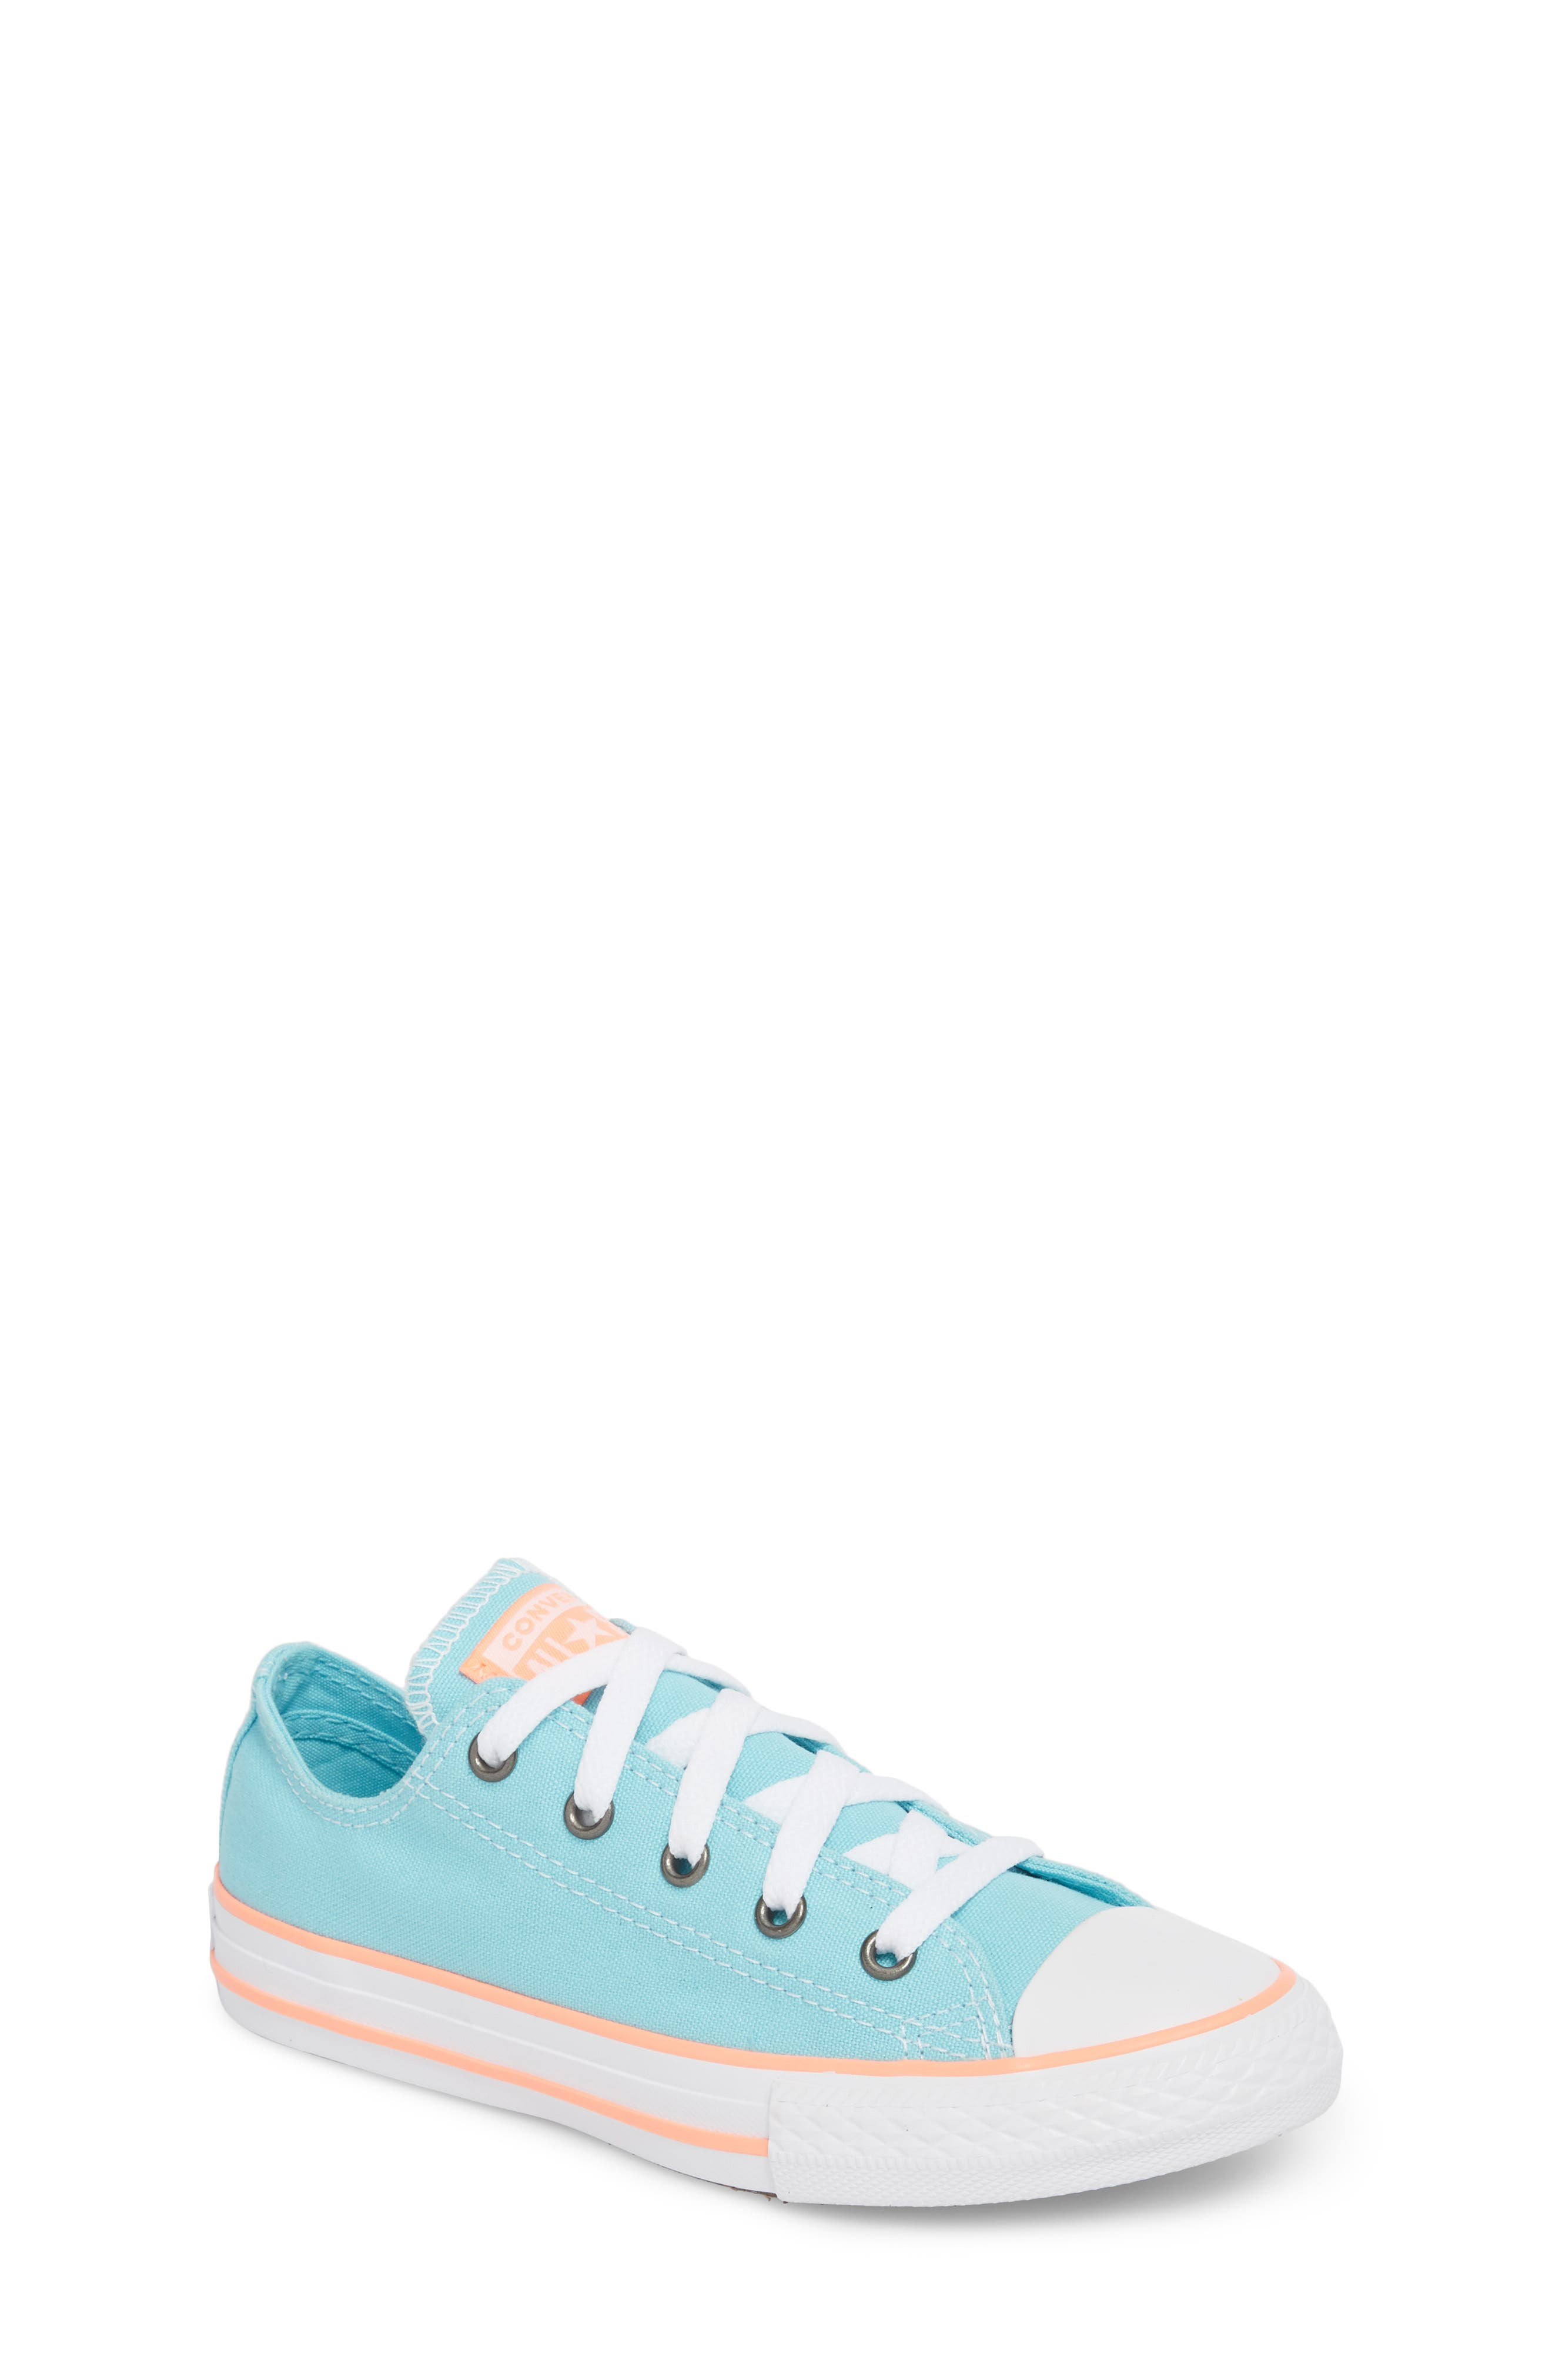 All Star<sup>®</sup> Low Top Sneaker,                             Main thumbnail 1, color,                             486